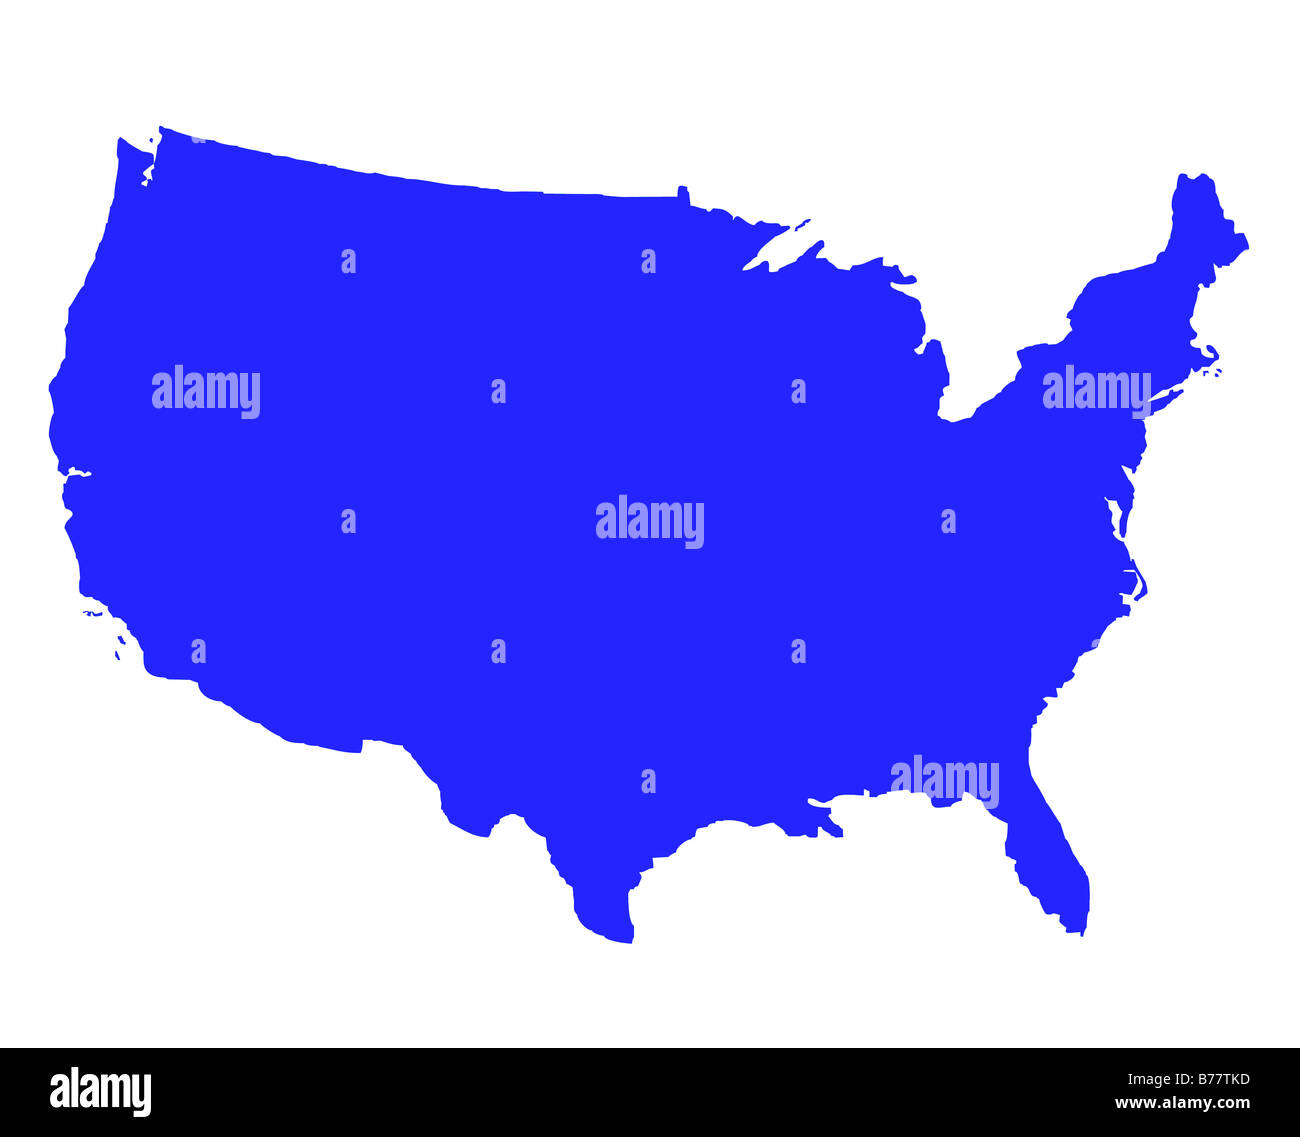 United States of America outline map in blue isolated on white Stock ...